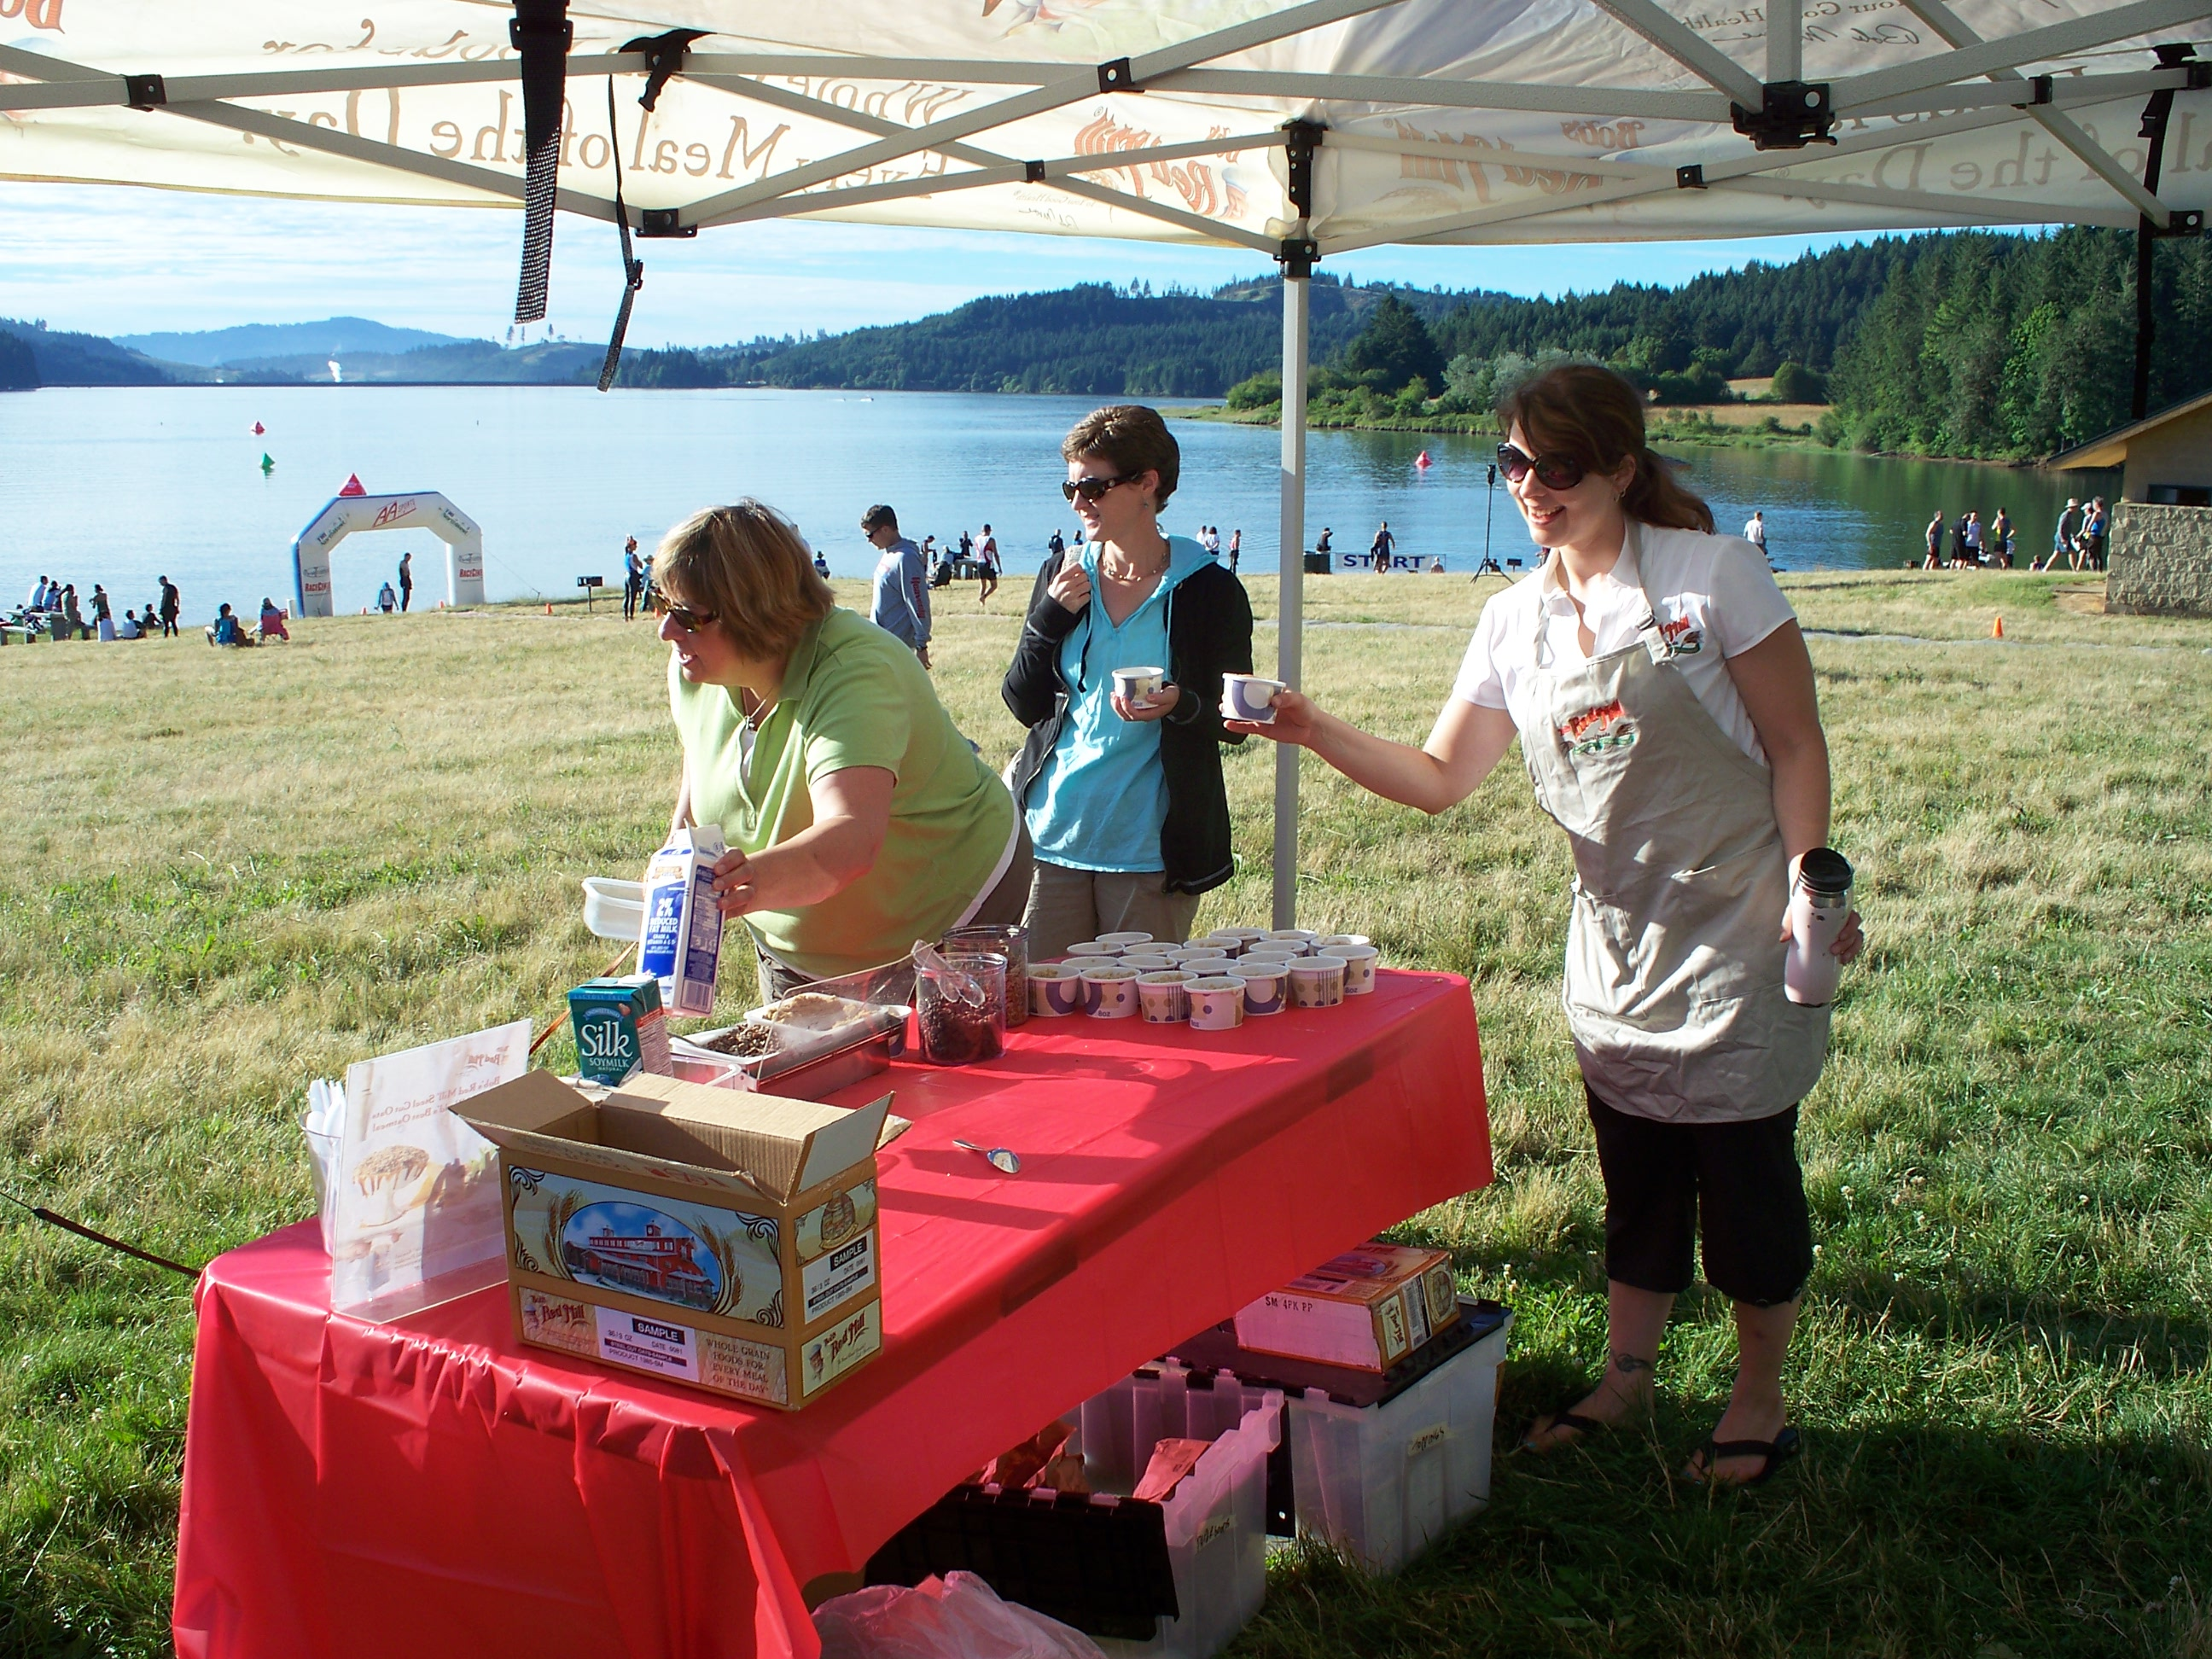 Both athletes and spectators enjoyed our oatmeal toppings bar.